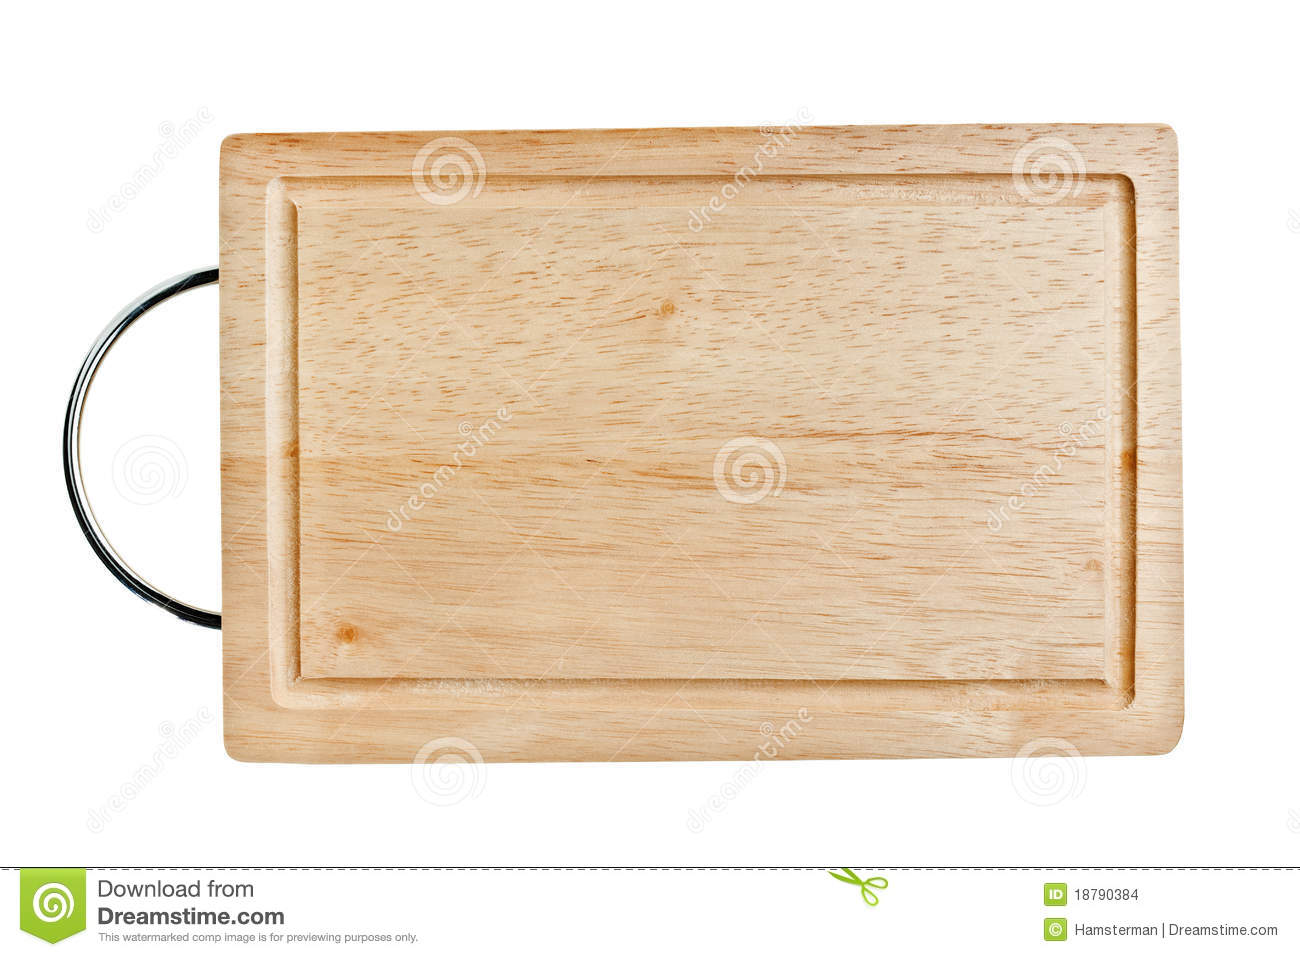 Exceptional Wooden Chopping Board With Handle #1: Brown-wooden-chopping-board-metal-handle-18790384.jpg